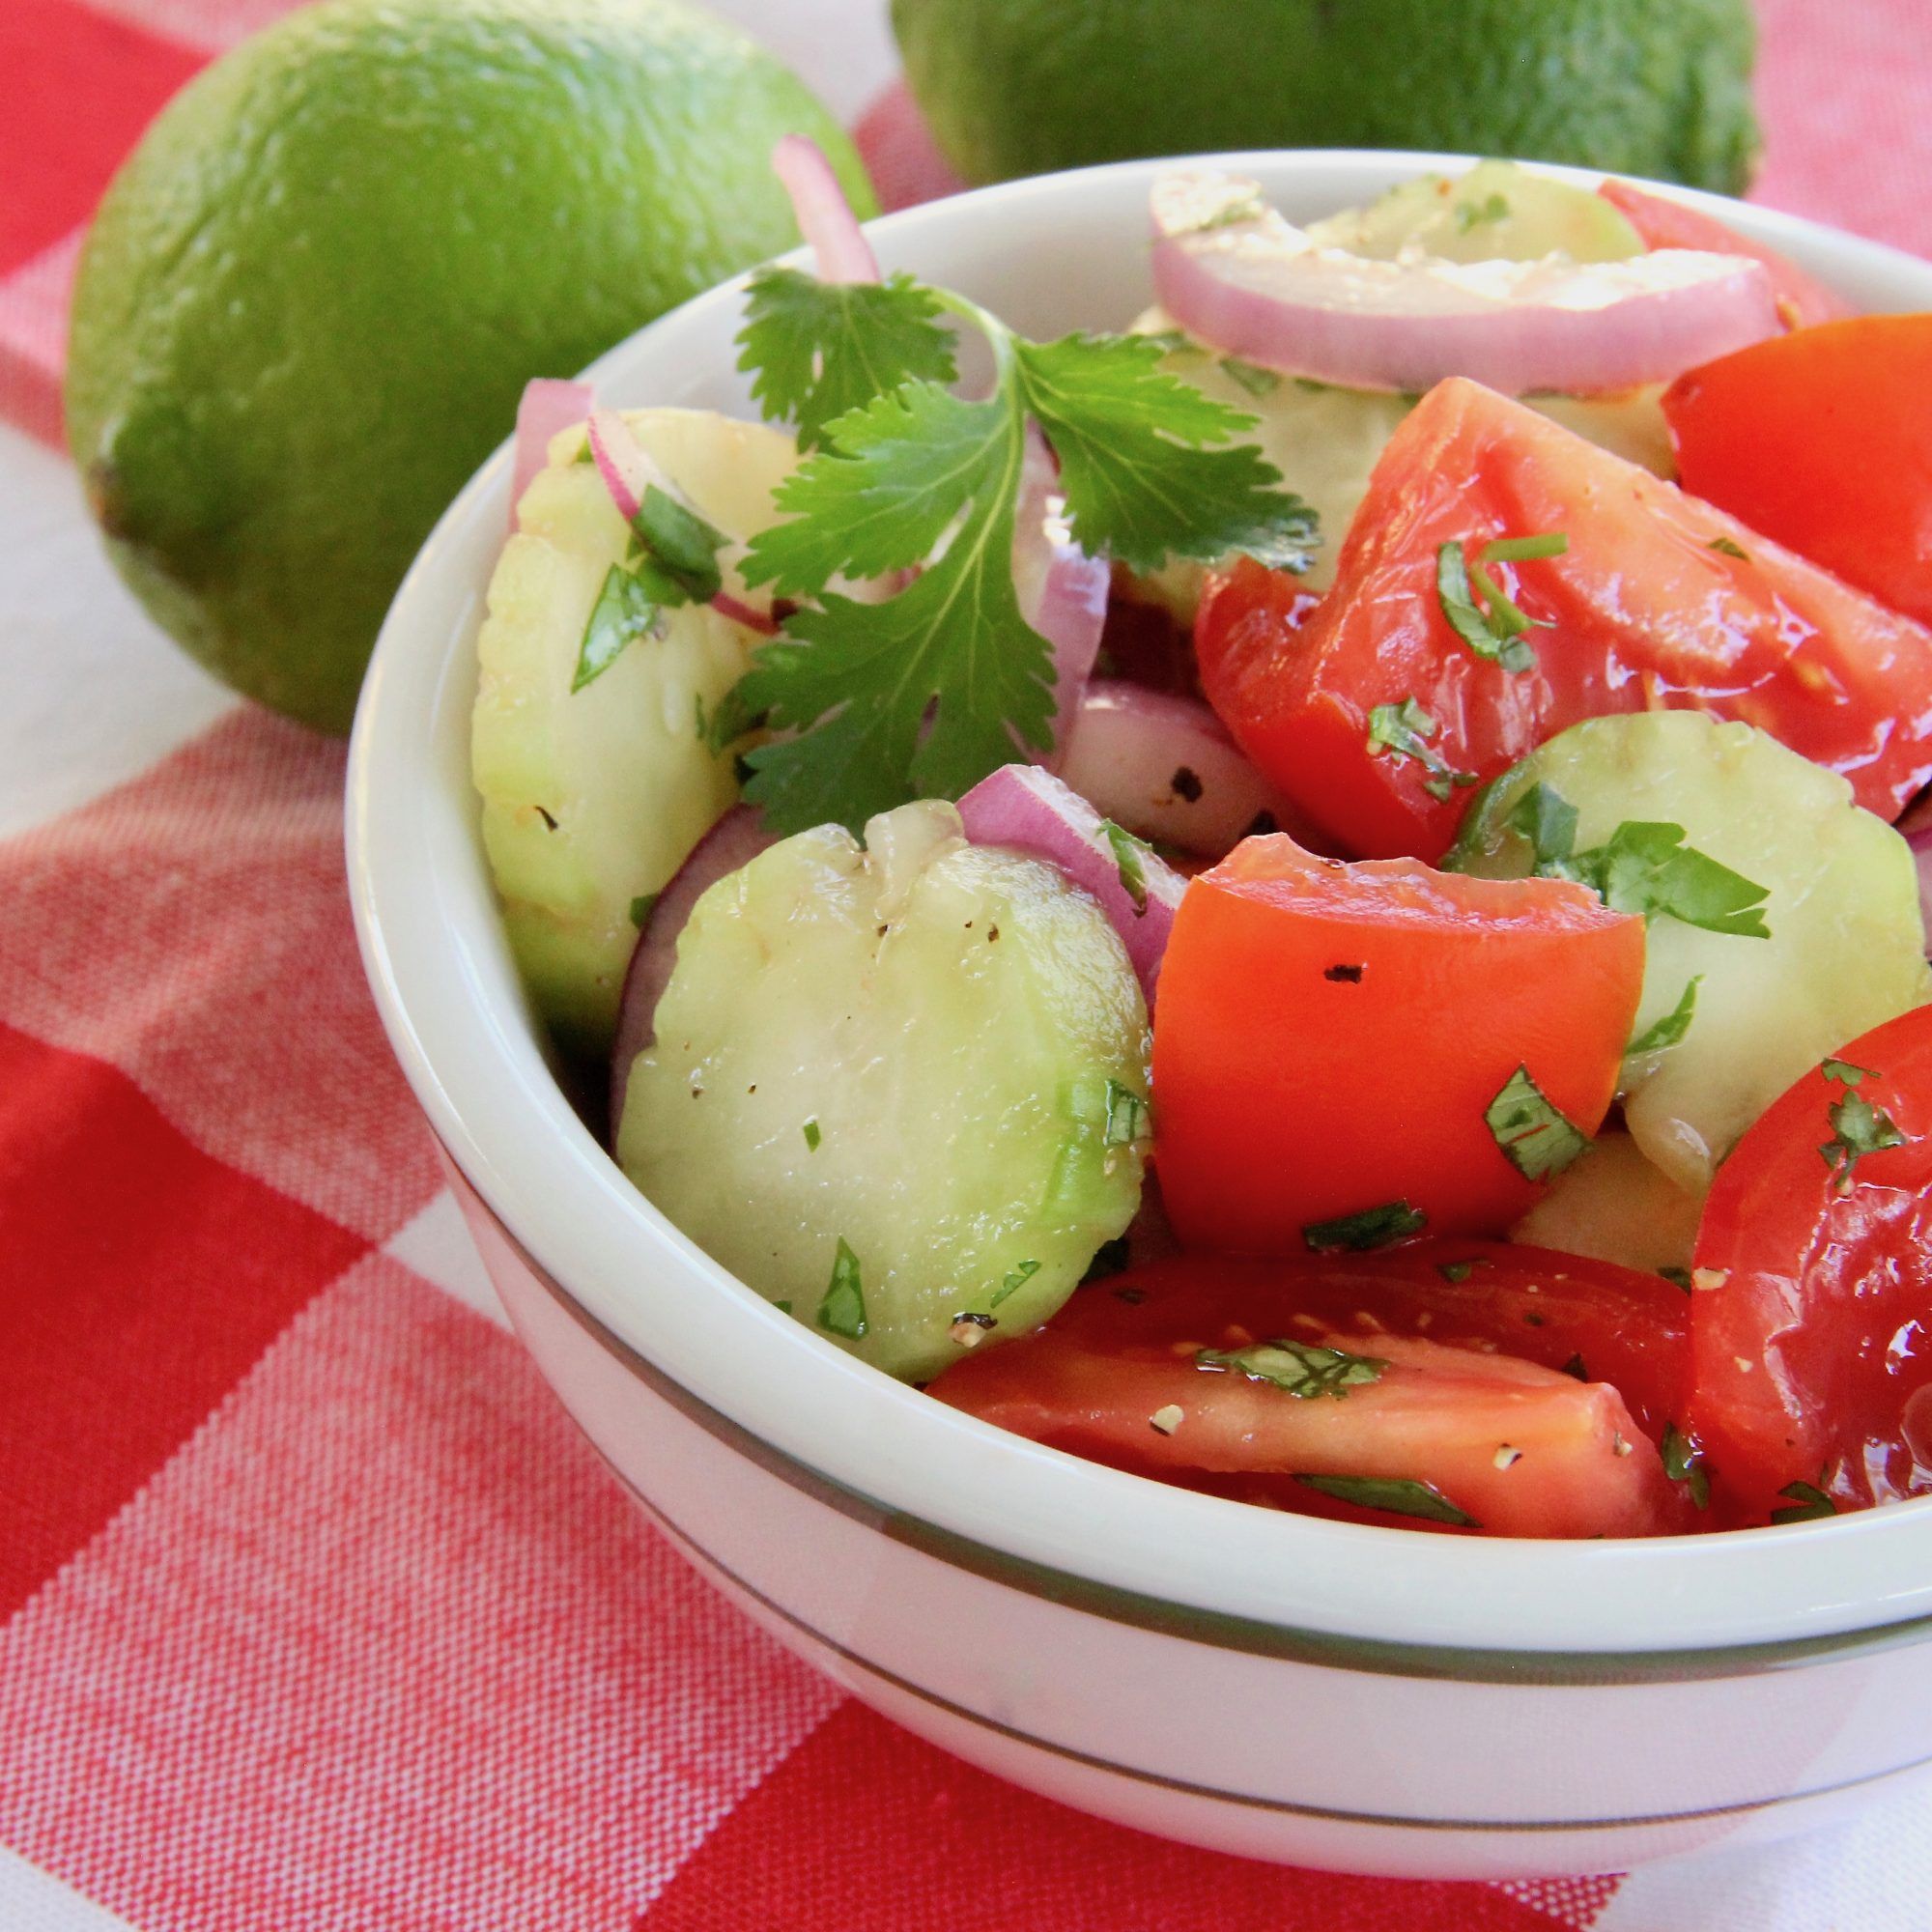 Cucumber, Tomato, and Red Onion Salad in a bowl on a checkered red picnic blanket